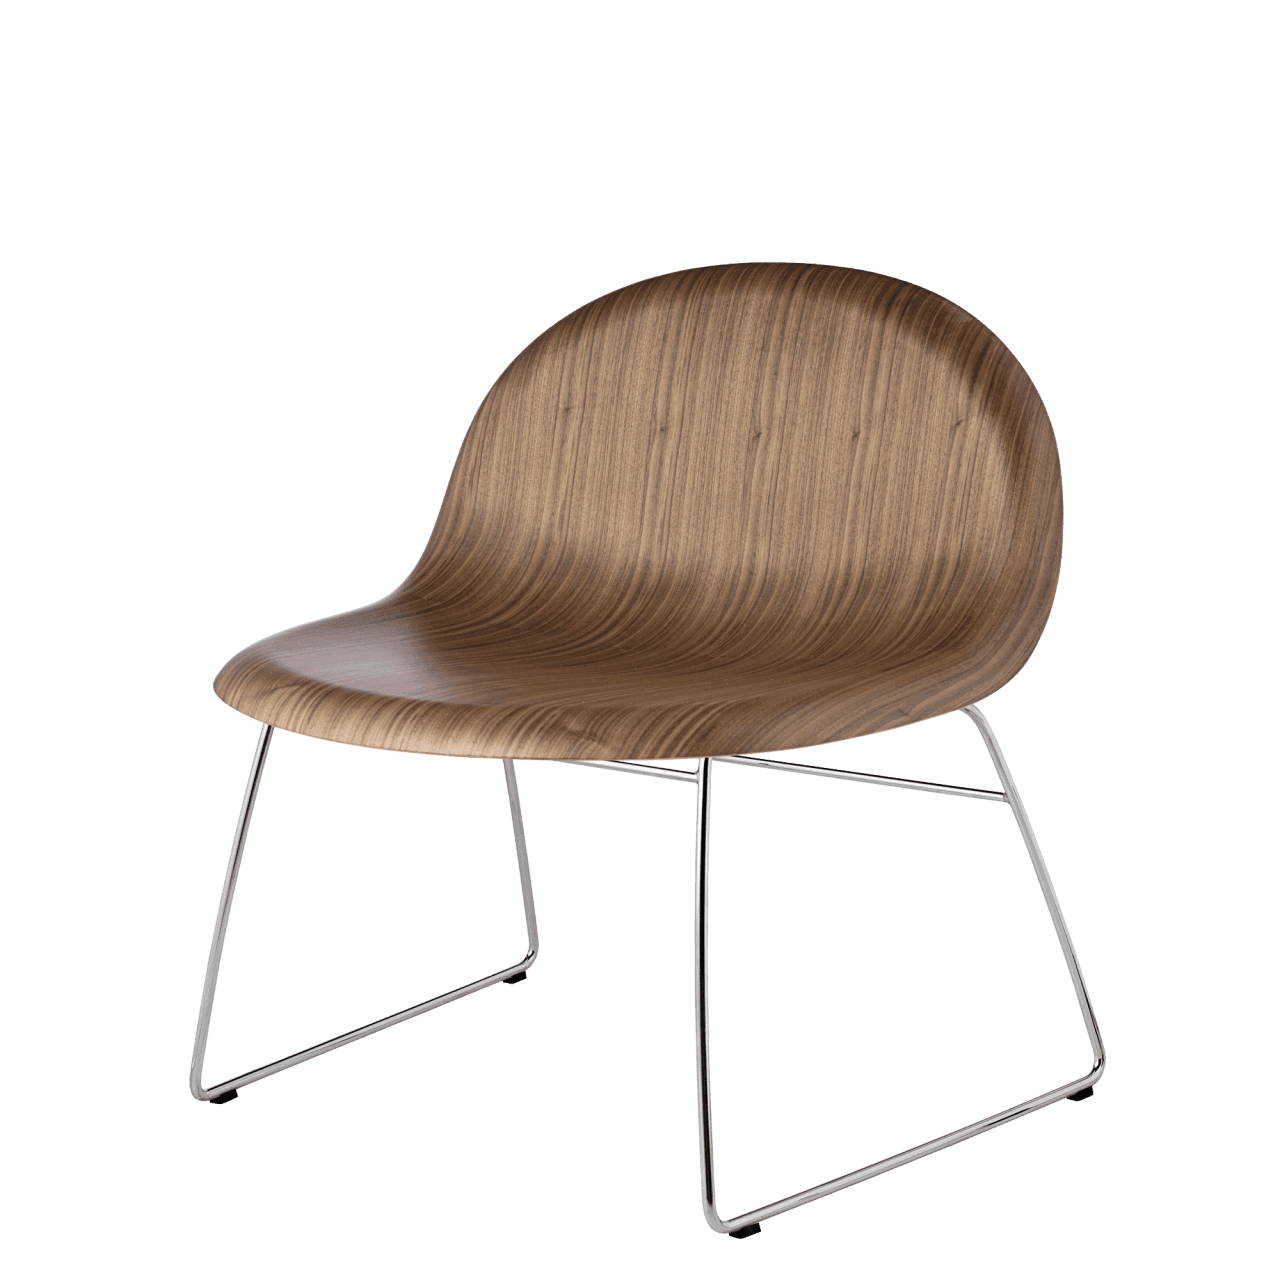 3D Lounge Chair Kufengestell